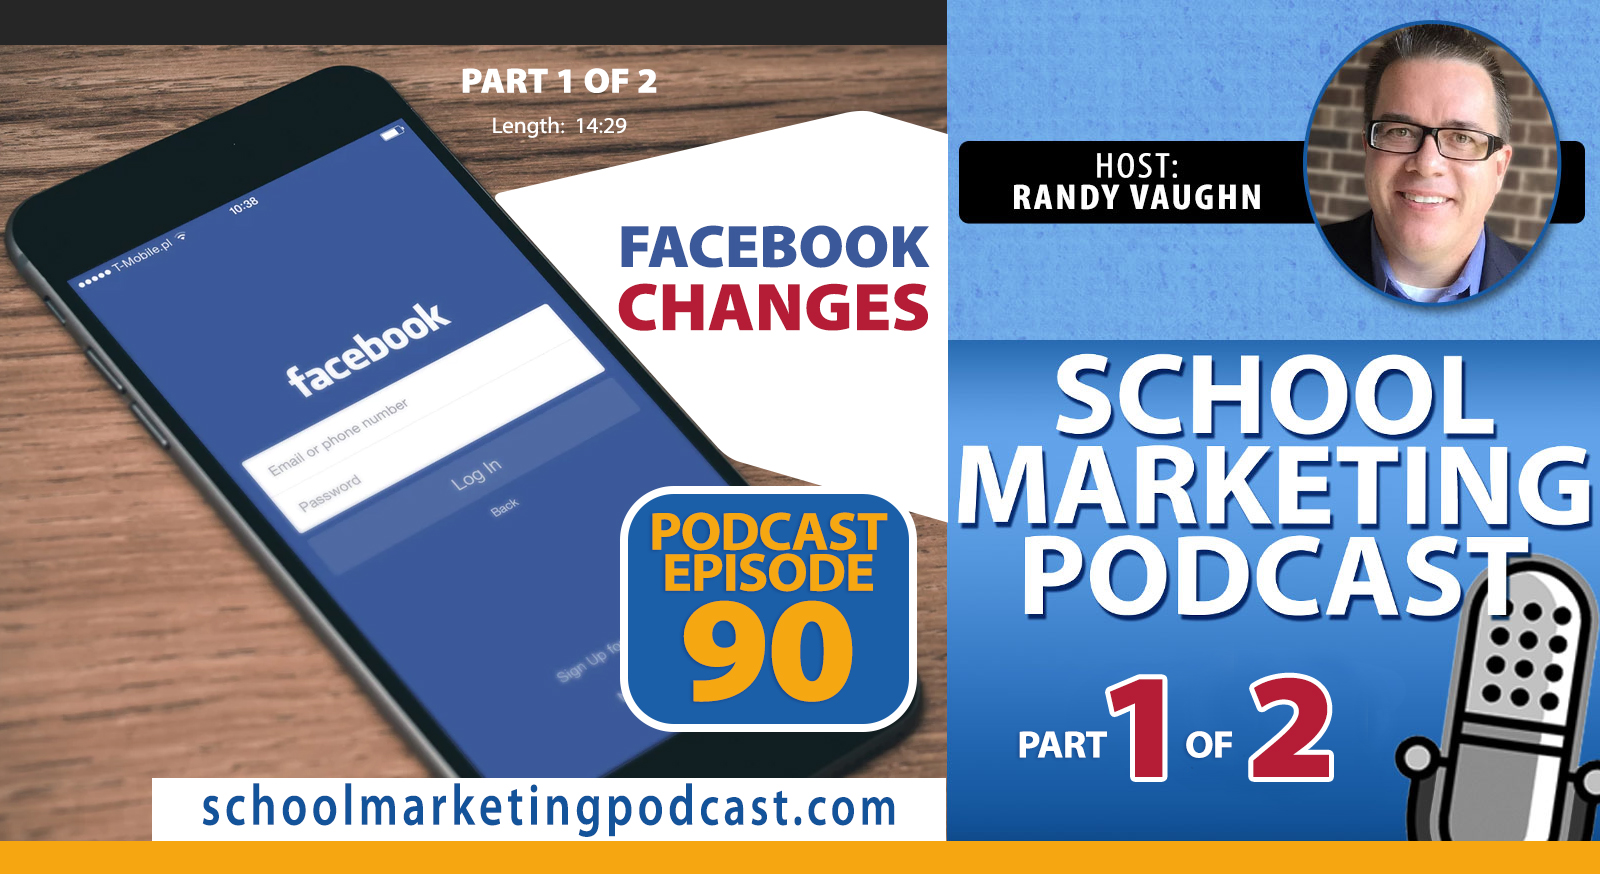 Panic or Peace: How to React to the Latest Facebook Changes for Your School - Part 1 of 2 (School Marketing Podcast #90)